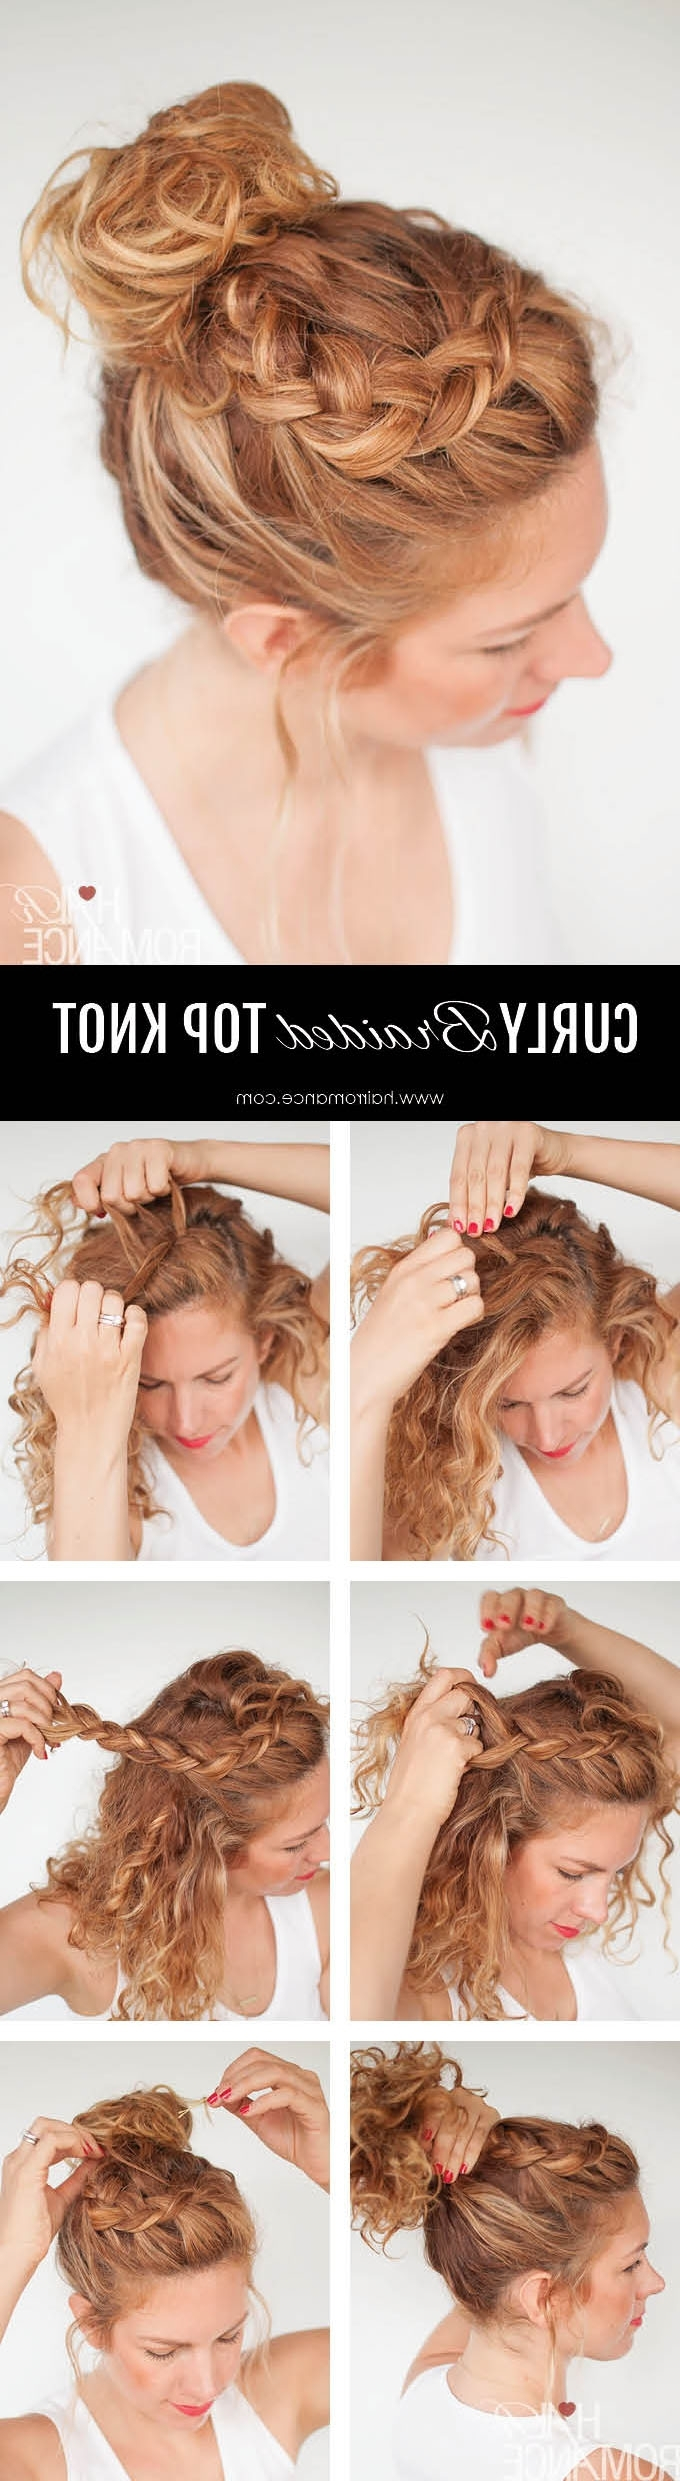 Everyday Curly Hairstyles – Curly Braided Top Knot Hairstyle Tutorial Intended For Recent Braided Everyday Hairstyles (View 7 of 15)